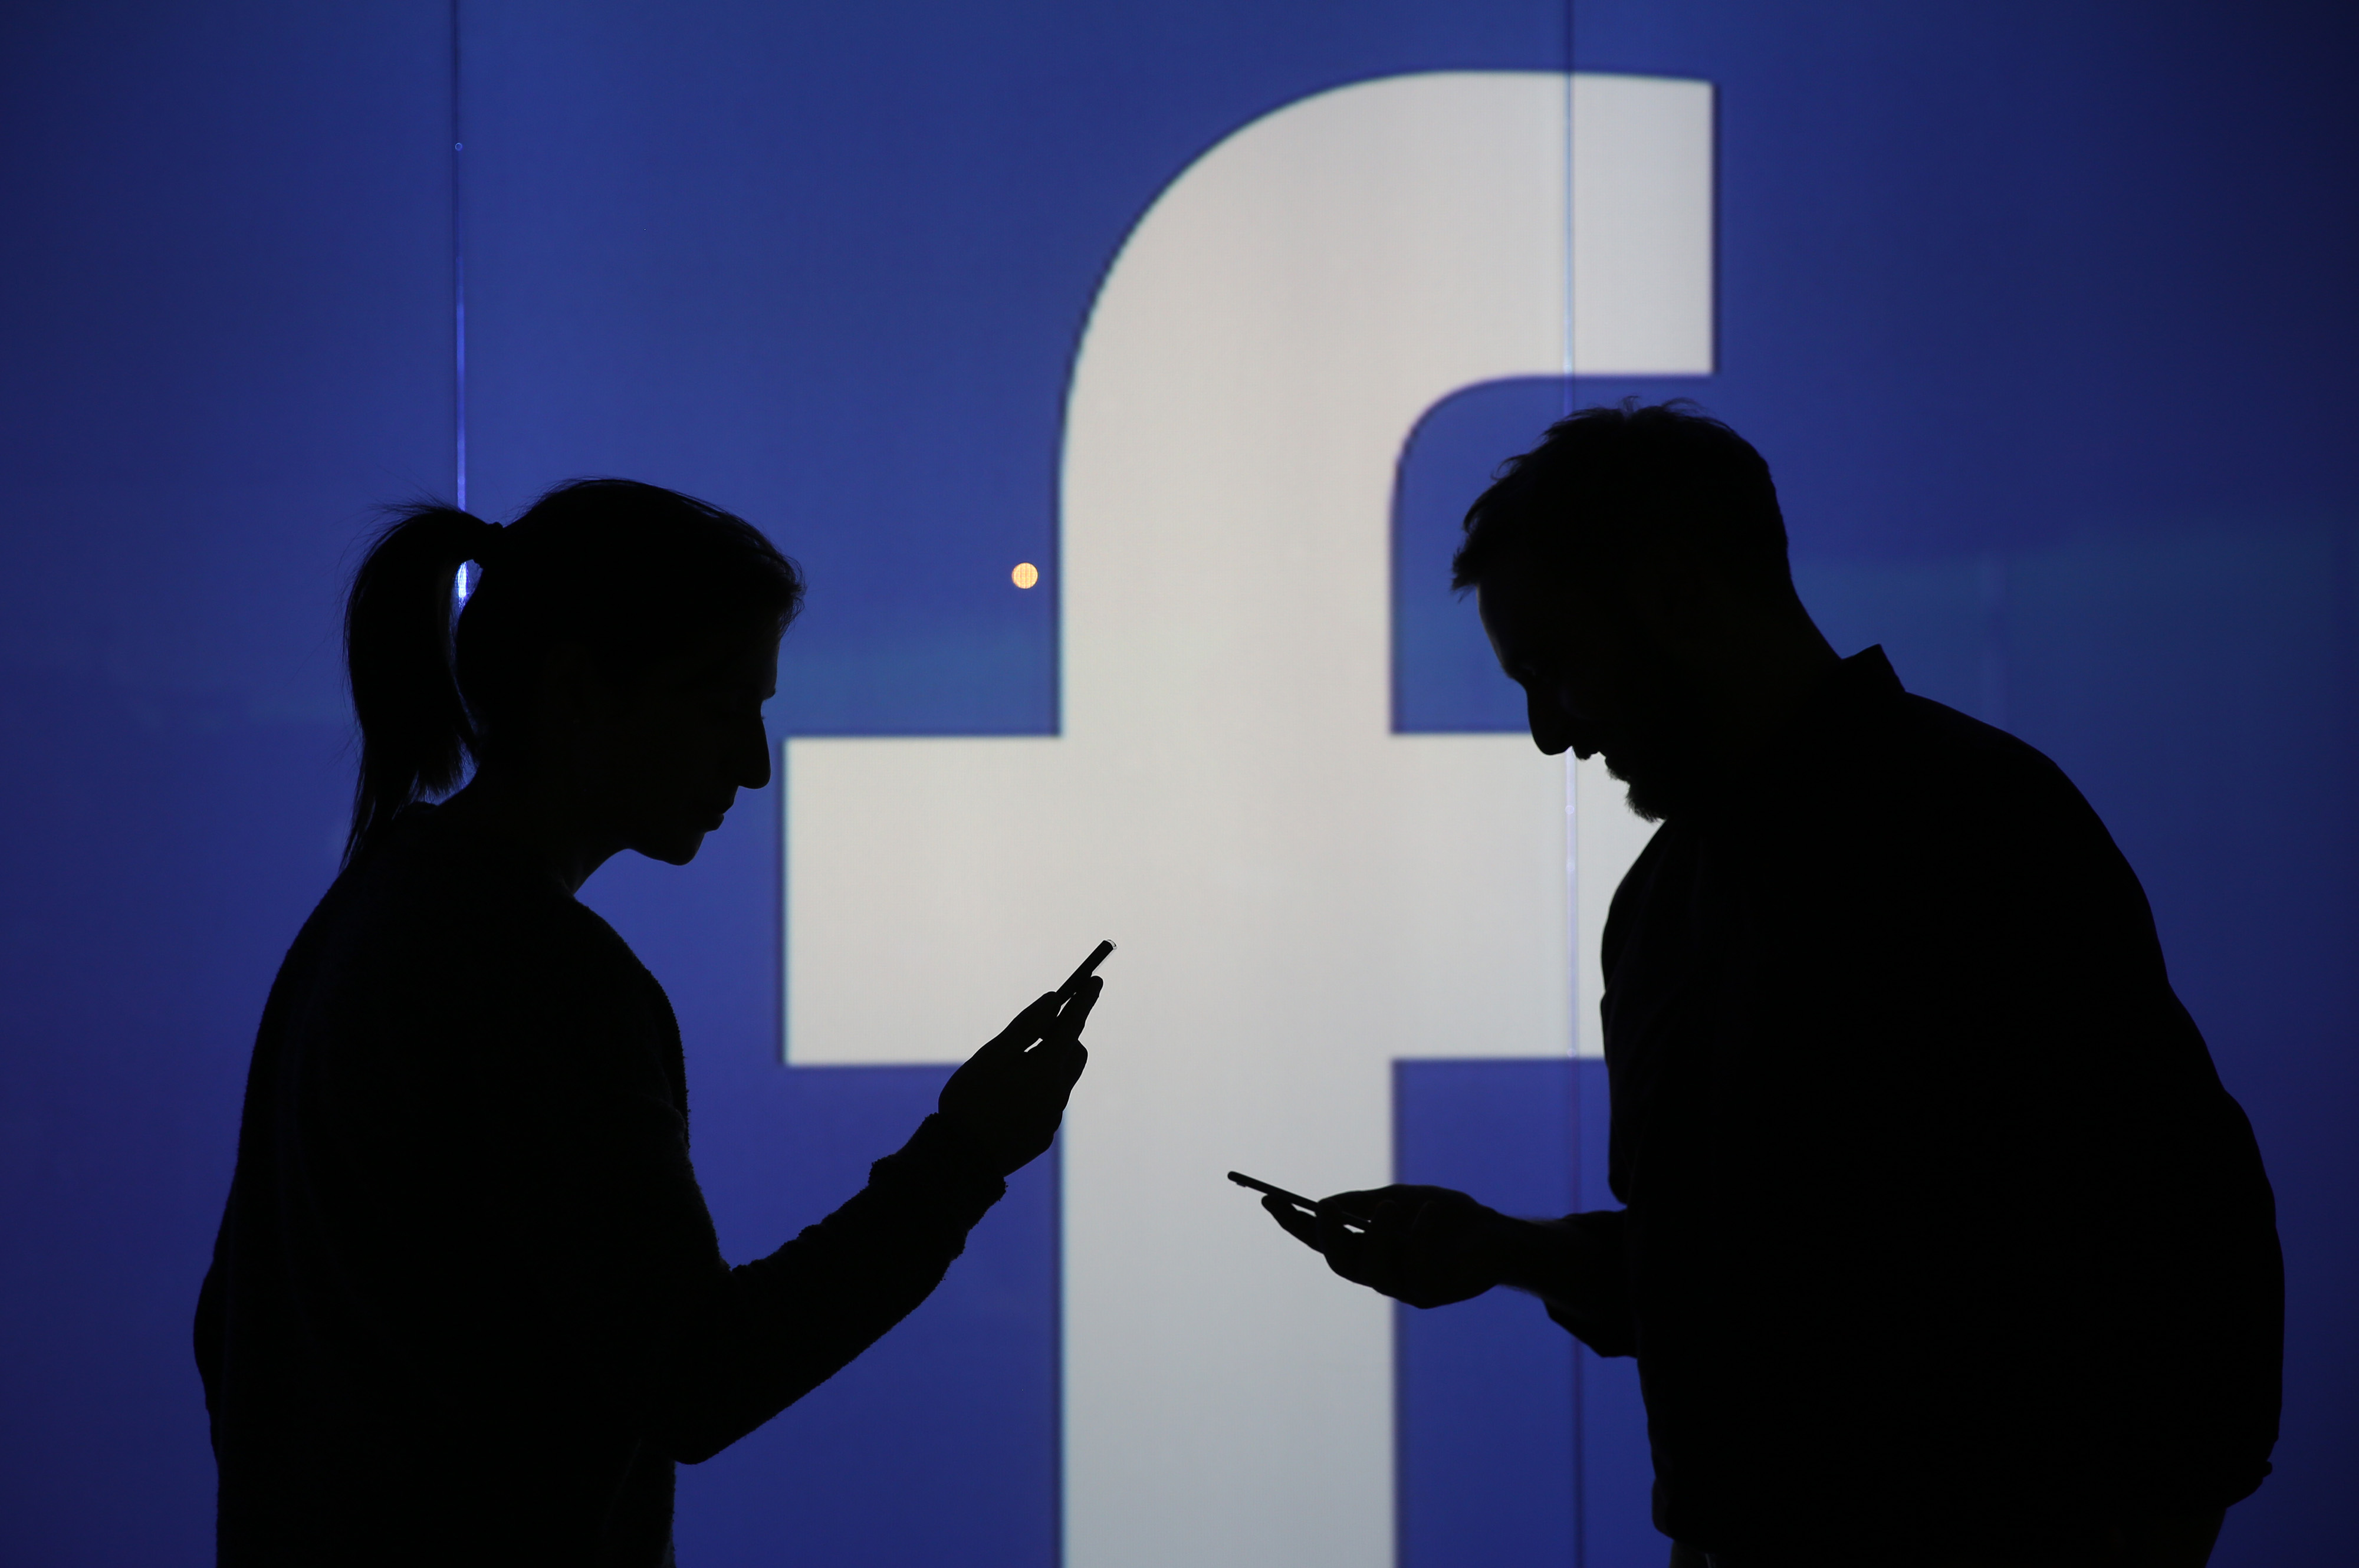 People are seen as silhouettes as they check mobile devices whilst standing against an illuminated wall bearing Facebook Inc.s logo in this arranged photograph in London, on Dec. 23, 2015.